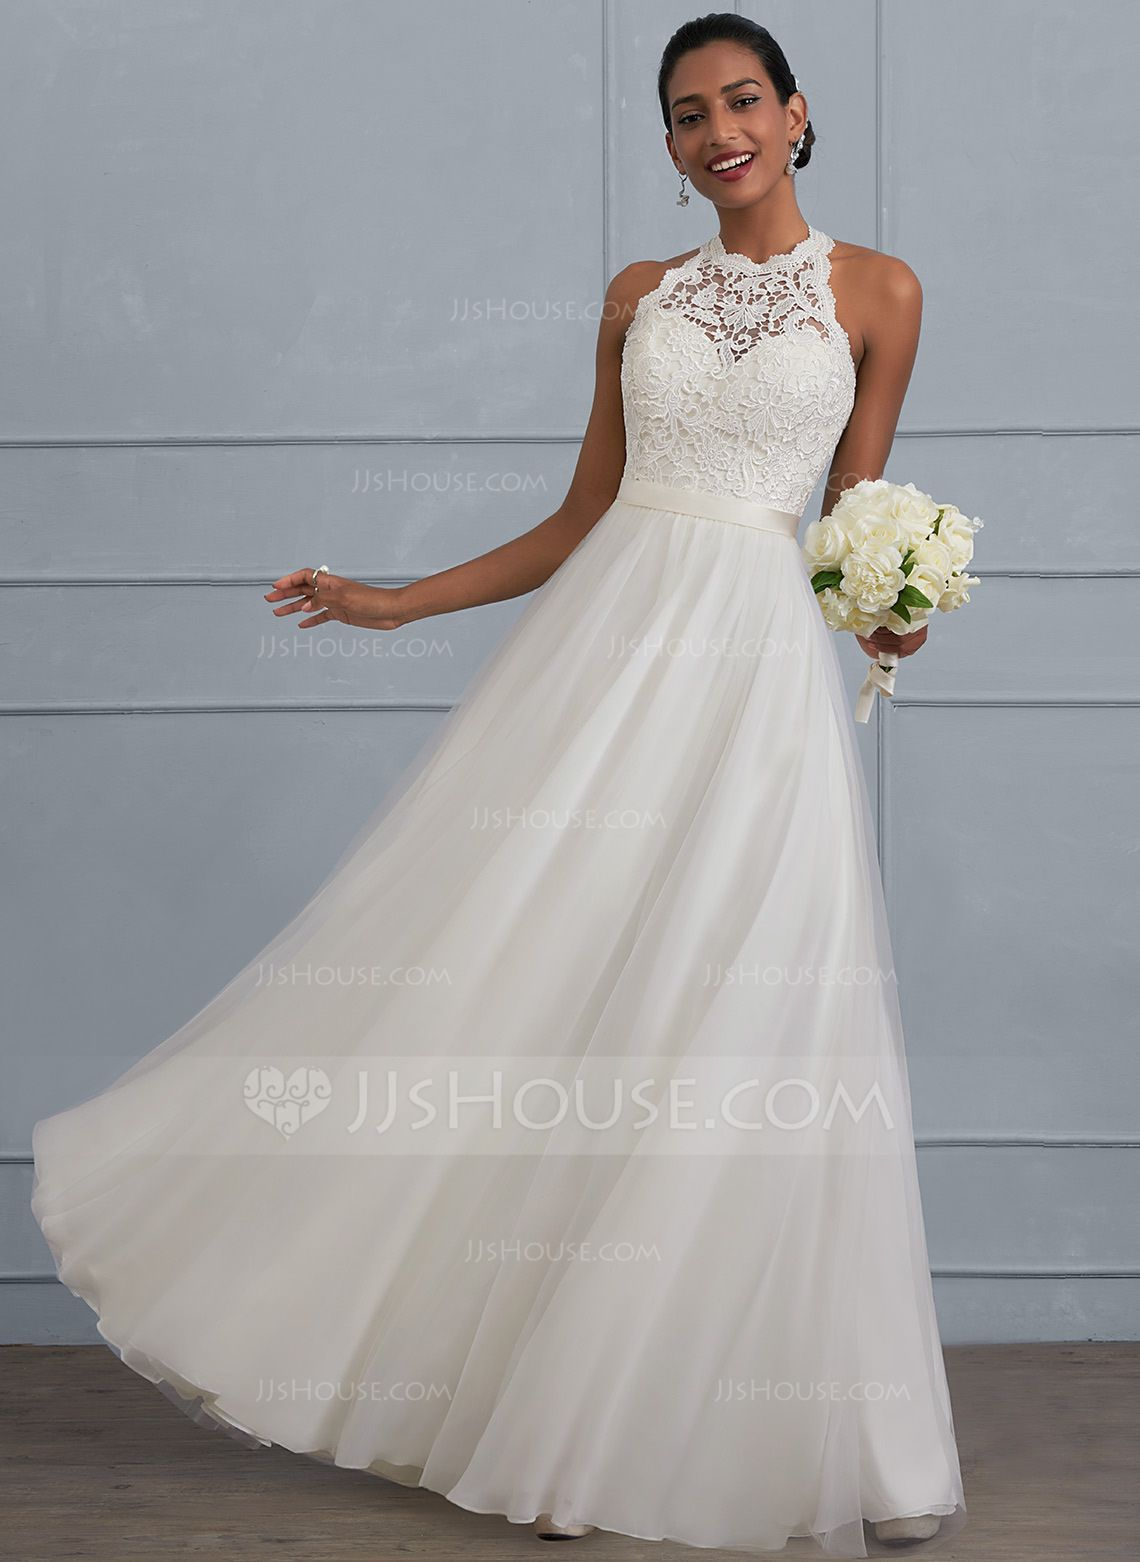 55 Wedding Dresses Jjshouse Country Dresses For Weddings Check More At Http Svesty Com Wedding Dresses Jjshouse Beautiful Prom Champagne